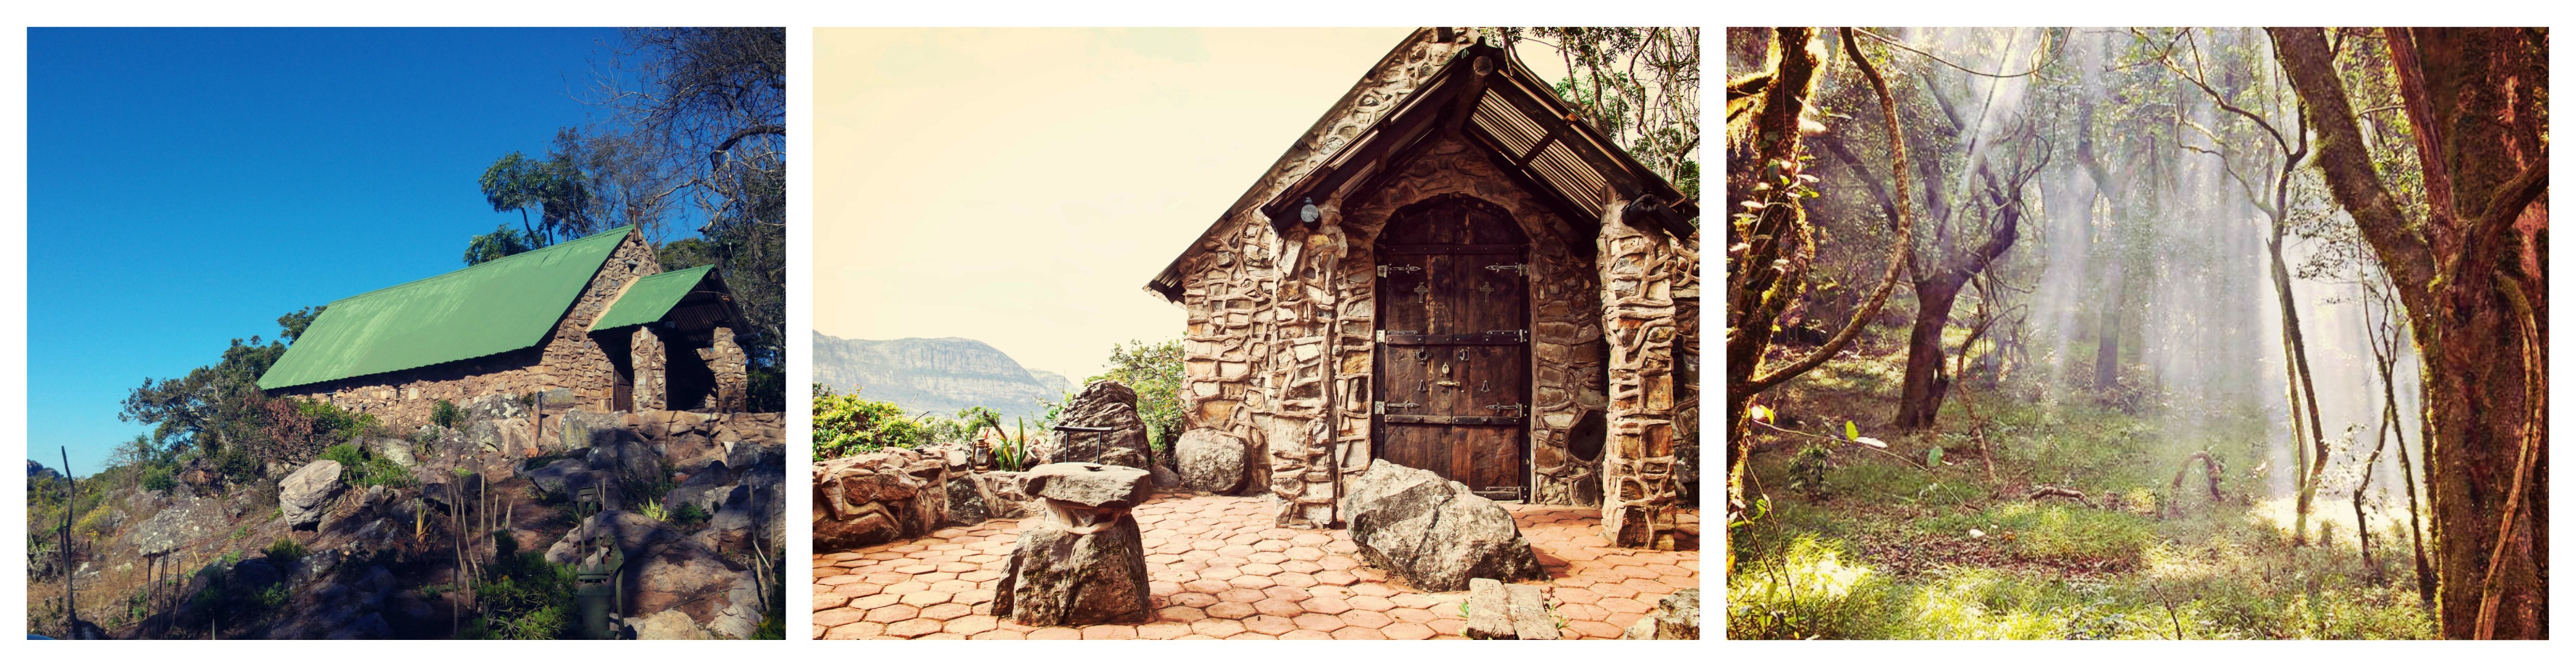 Cloudforest Chapel & Camping